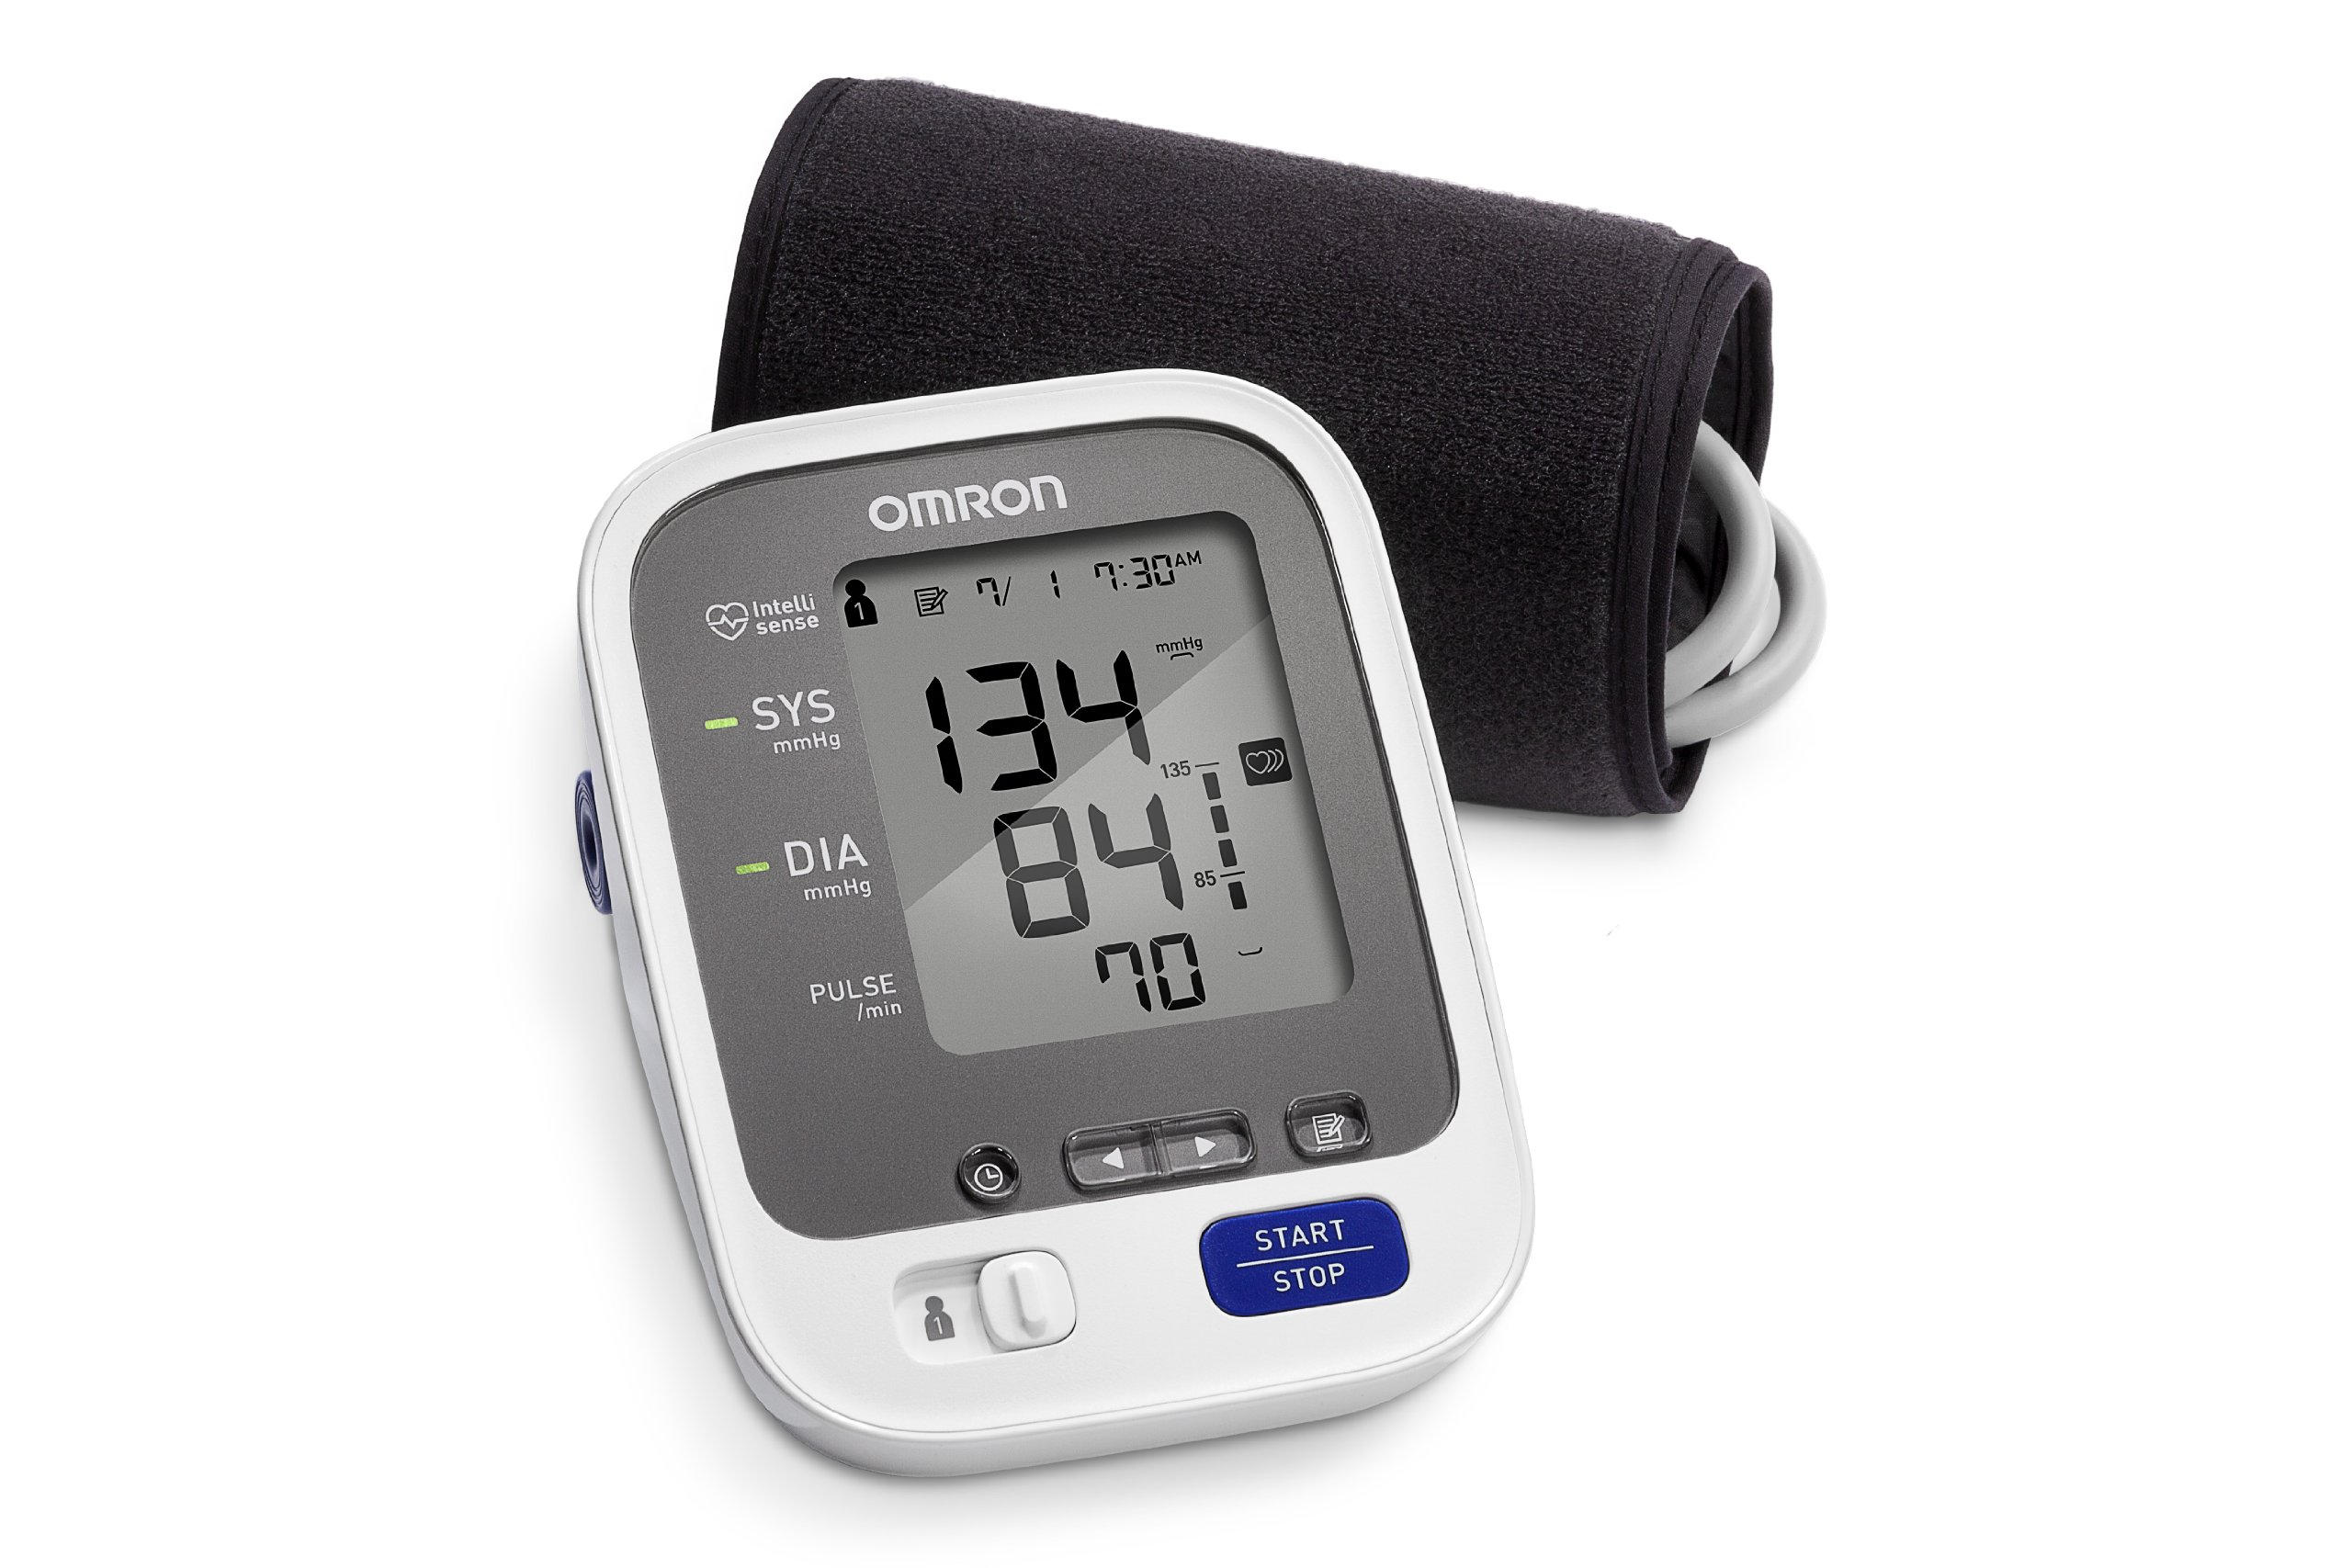 The Omron Blood Pressure Monitor 10 Series BPN blood pressure monitor is hands down the most reliable home device on the market and the best home blood pressure monitor; Omron is a world-class manufacturer of blood pressure machines and the Omron 10 Series Blood Pressure Monitor BPN is their most advanced model available, with a built-in.